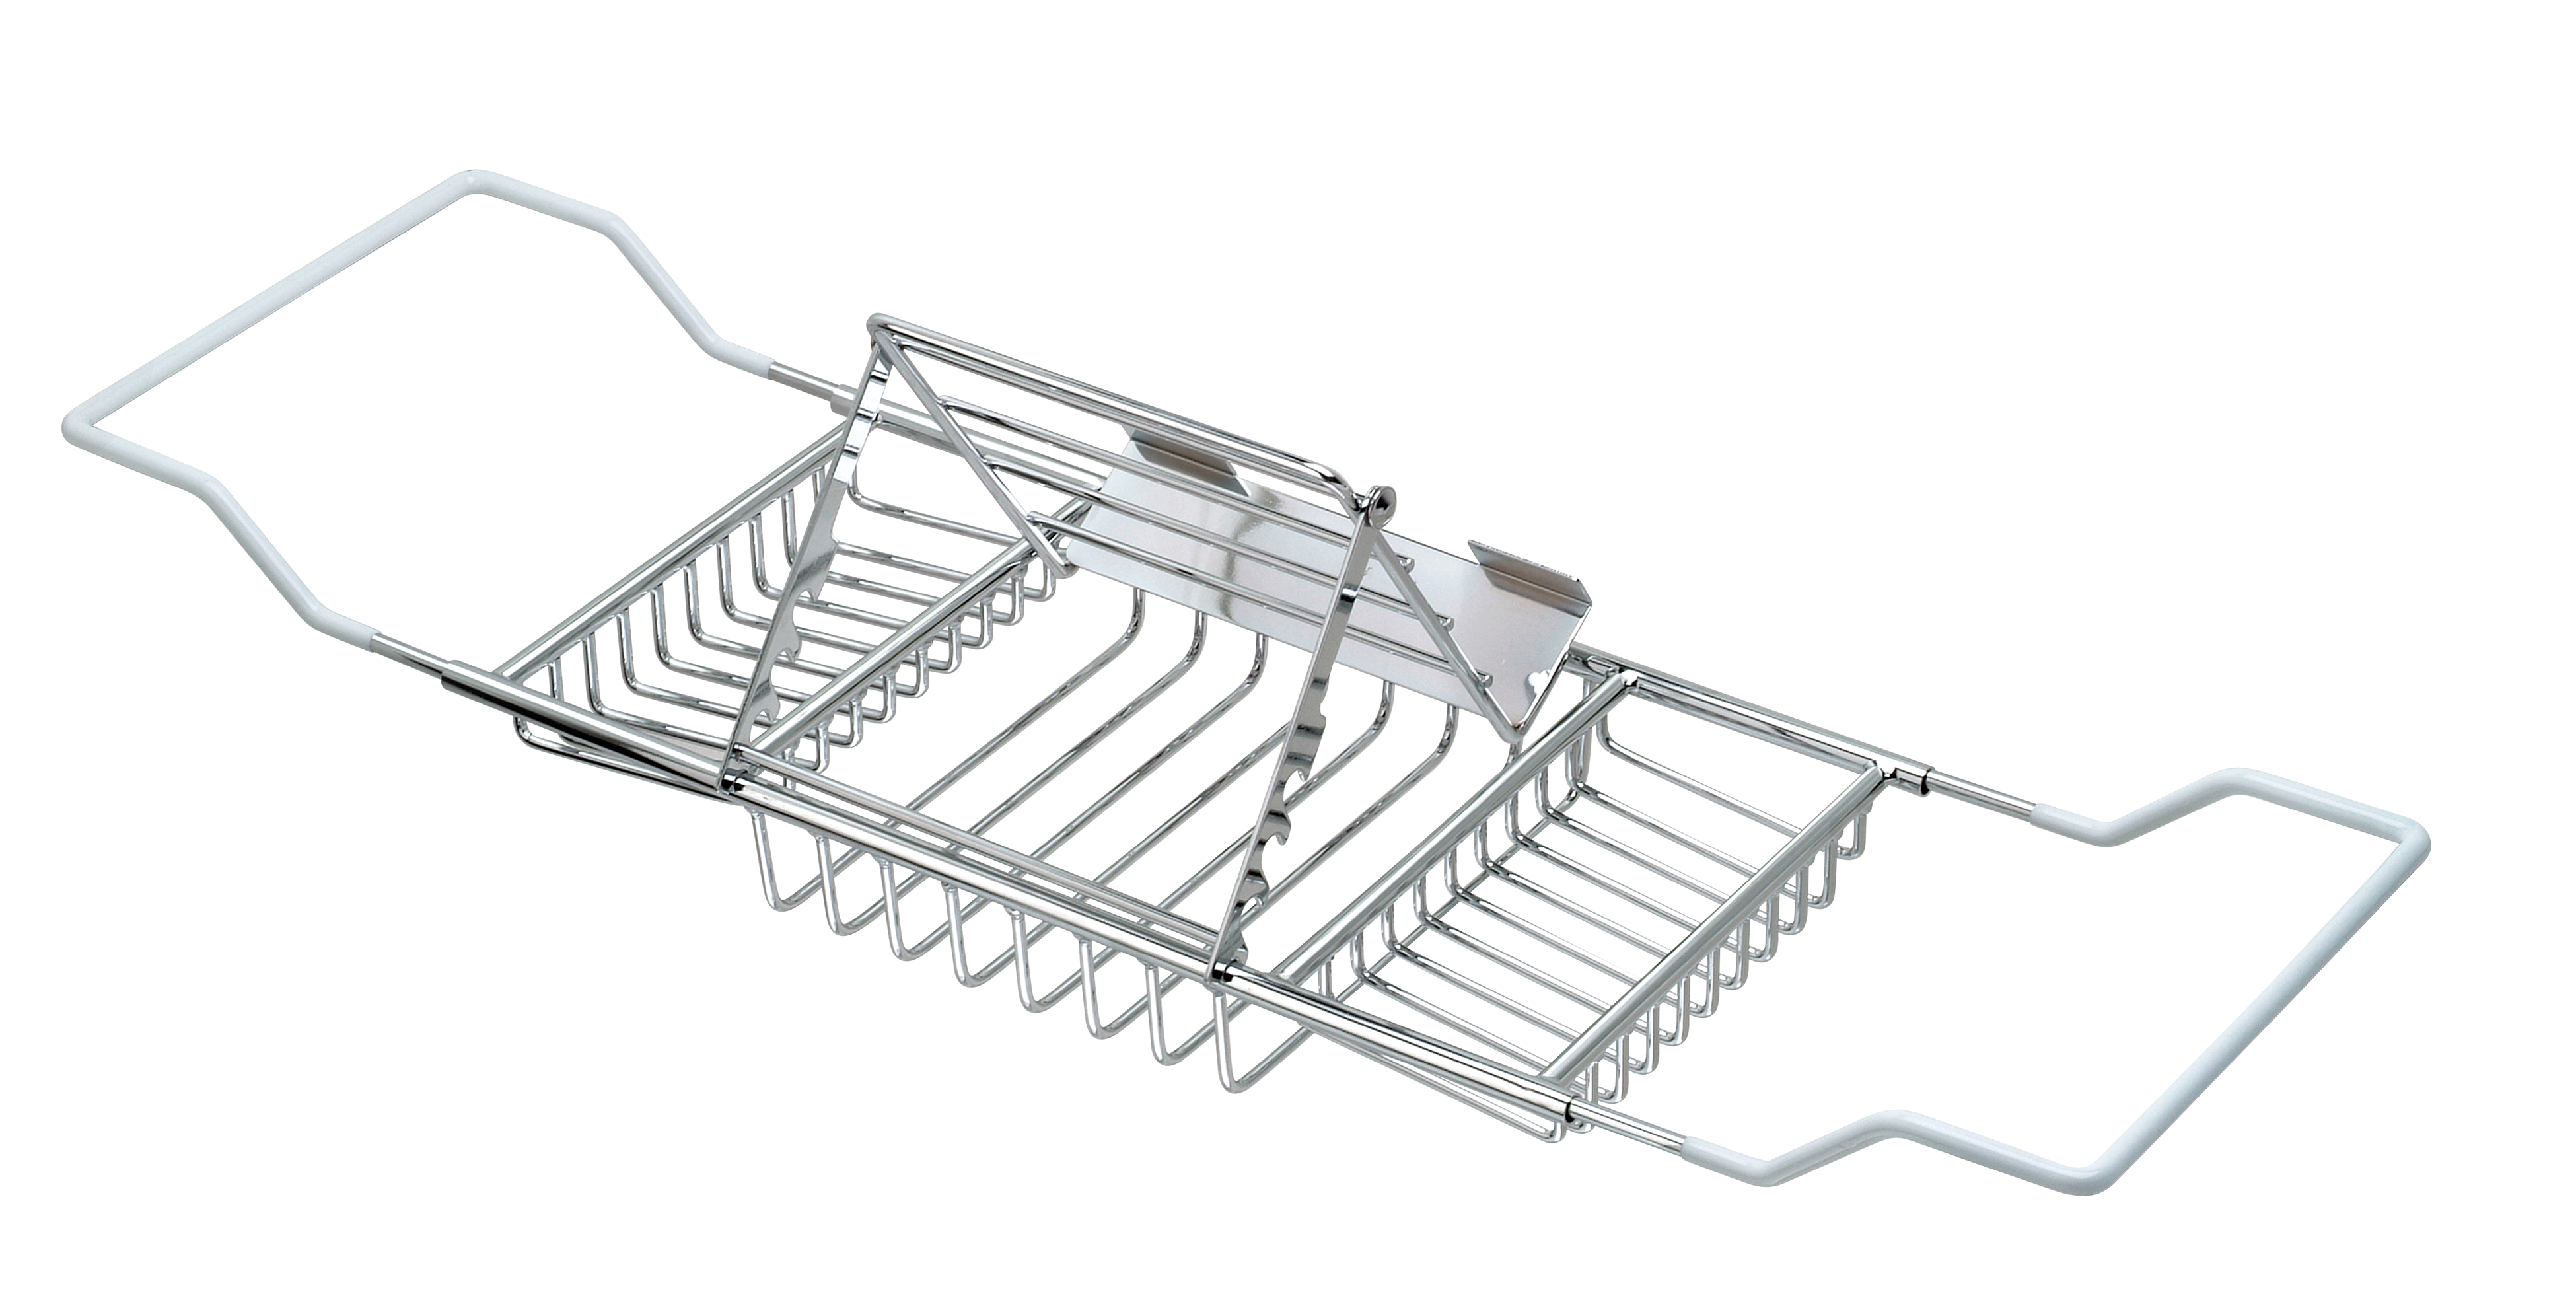 Bathtub Caddy with Adjustable Reading Rack - Bathtub Caddy | Taymor ...